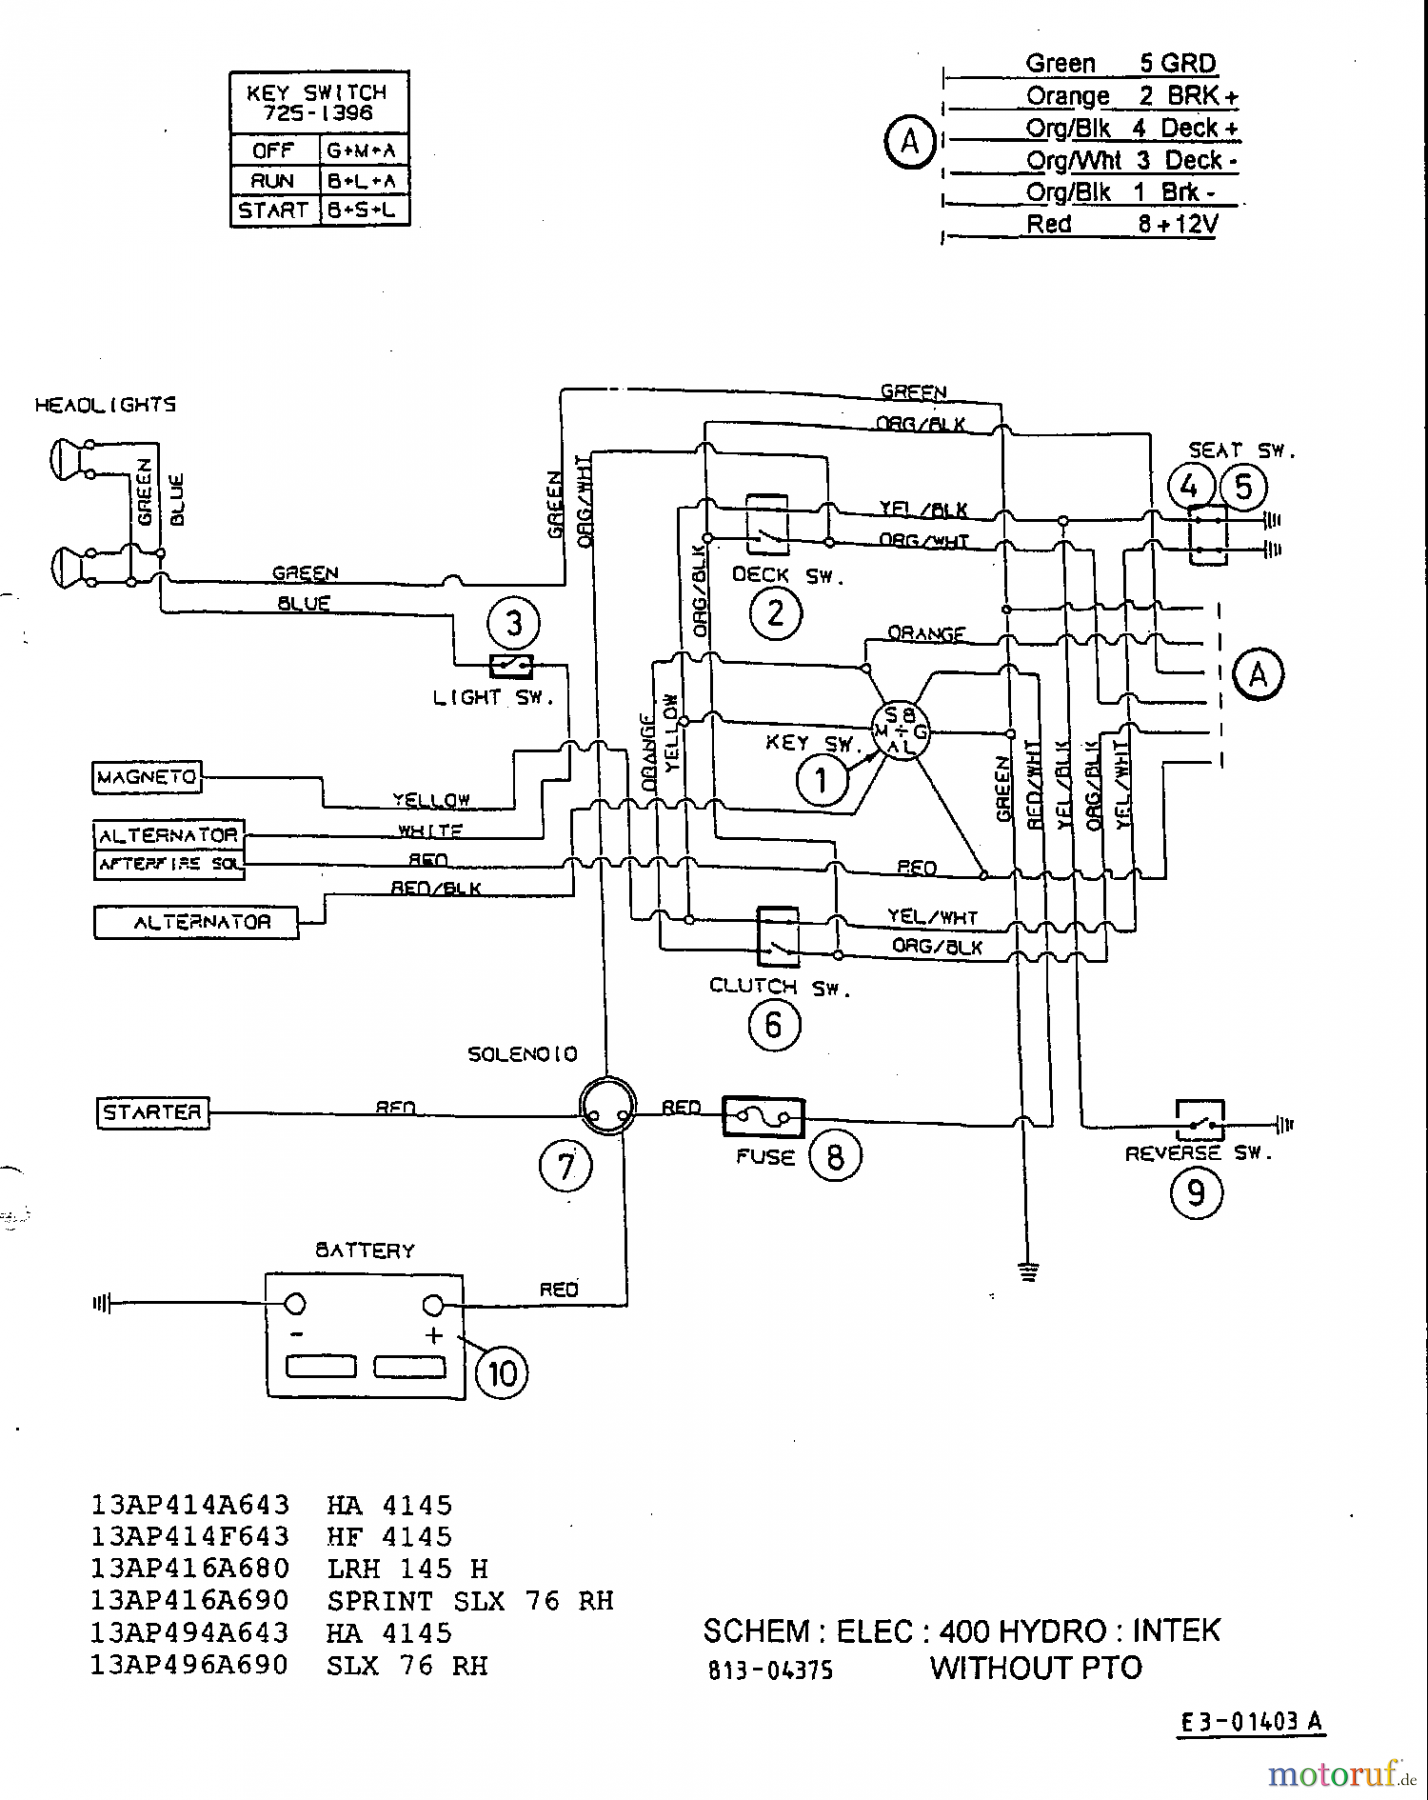 medium resolution of mtd wire diagram book diagram schema mtd wiring diagram book diagram schema mtd wiring diagram riding